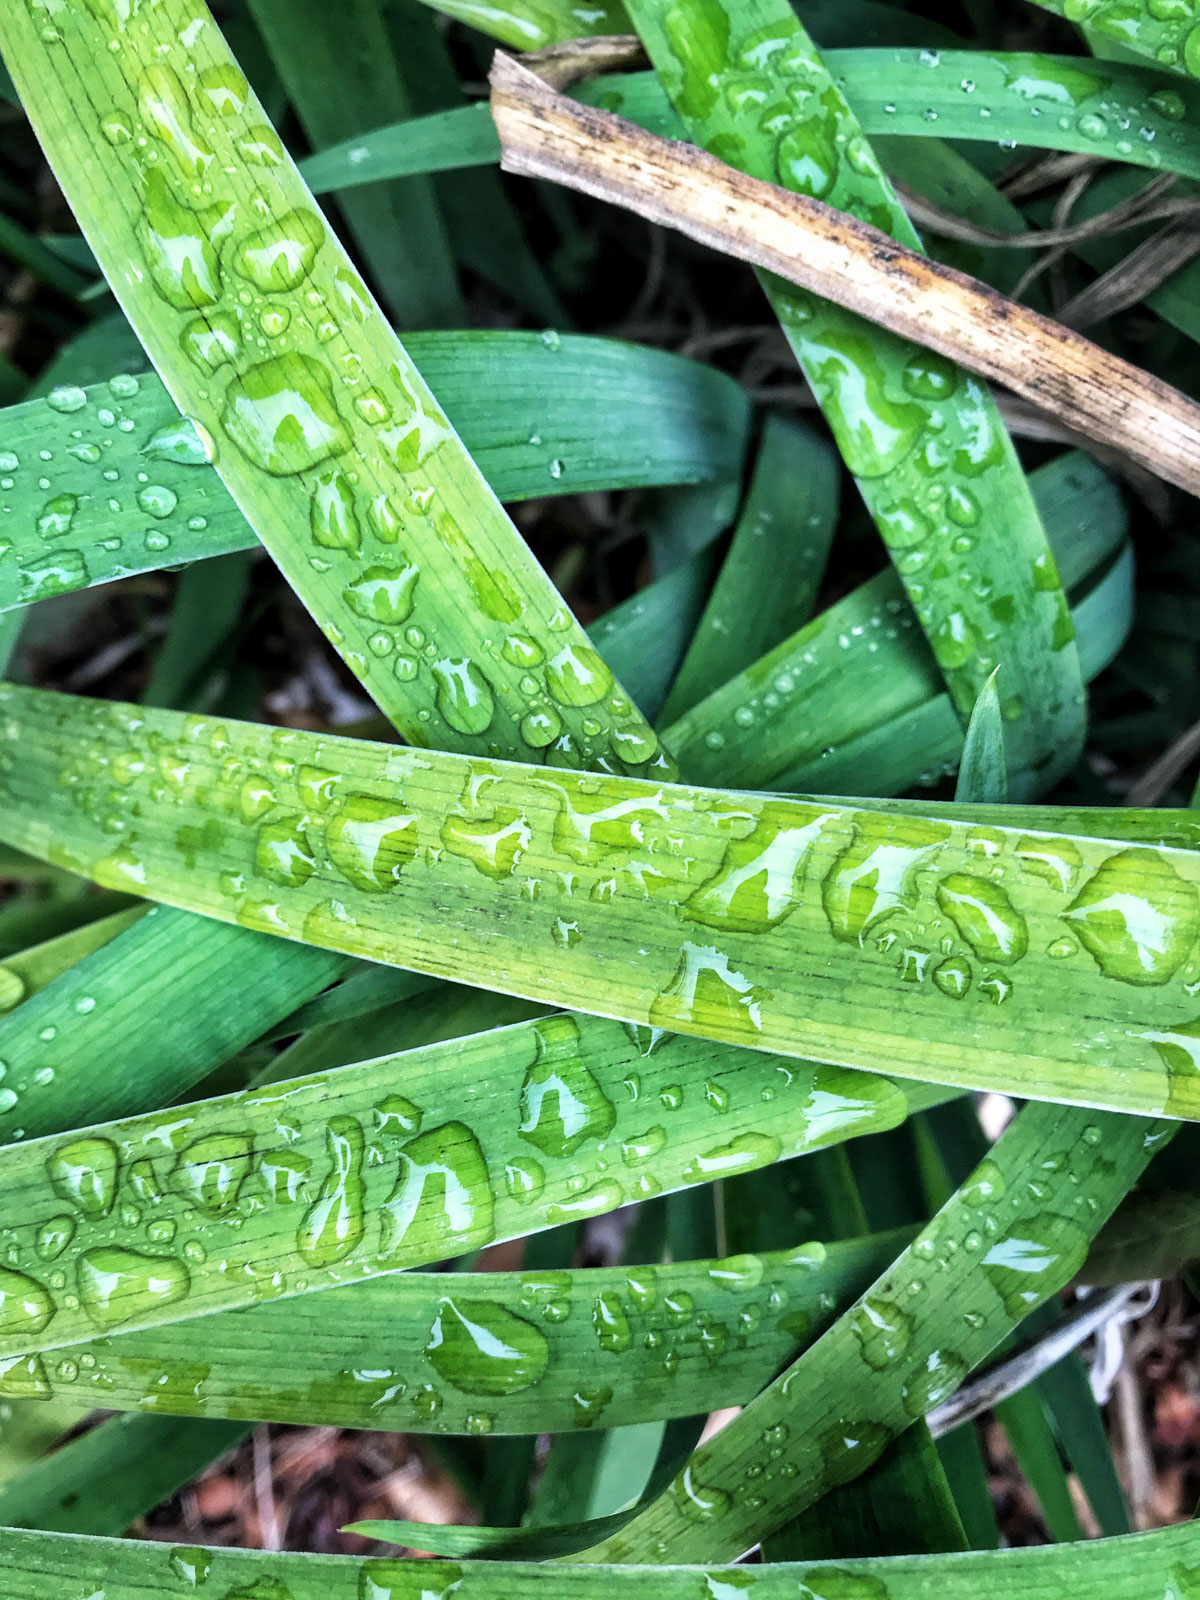 Mobile-Photo-Tips6-blades-of-grass-with-dew-on-them-chanel-french